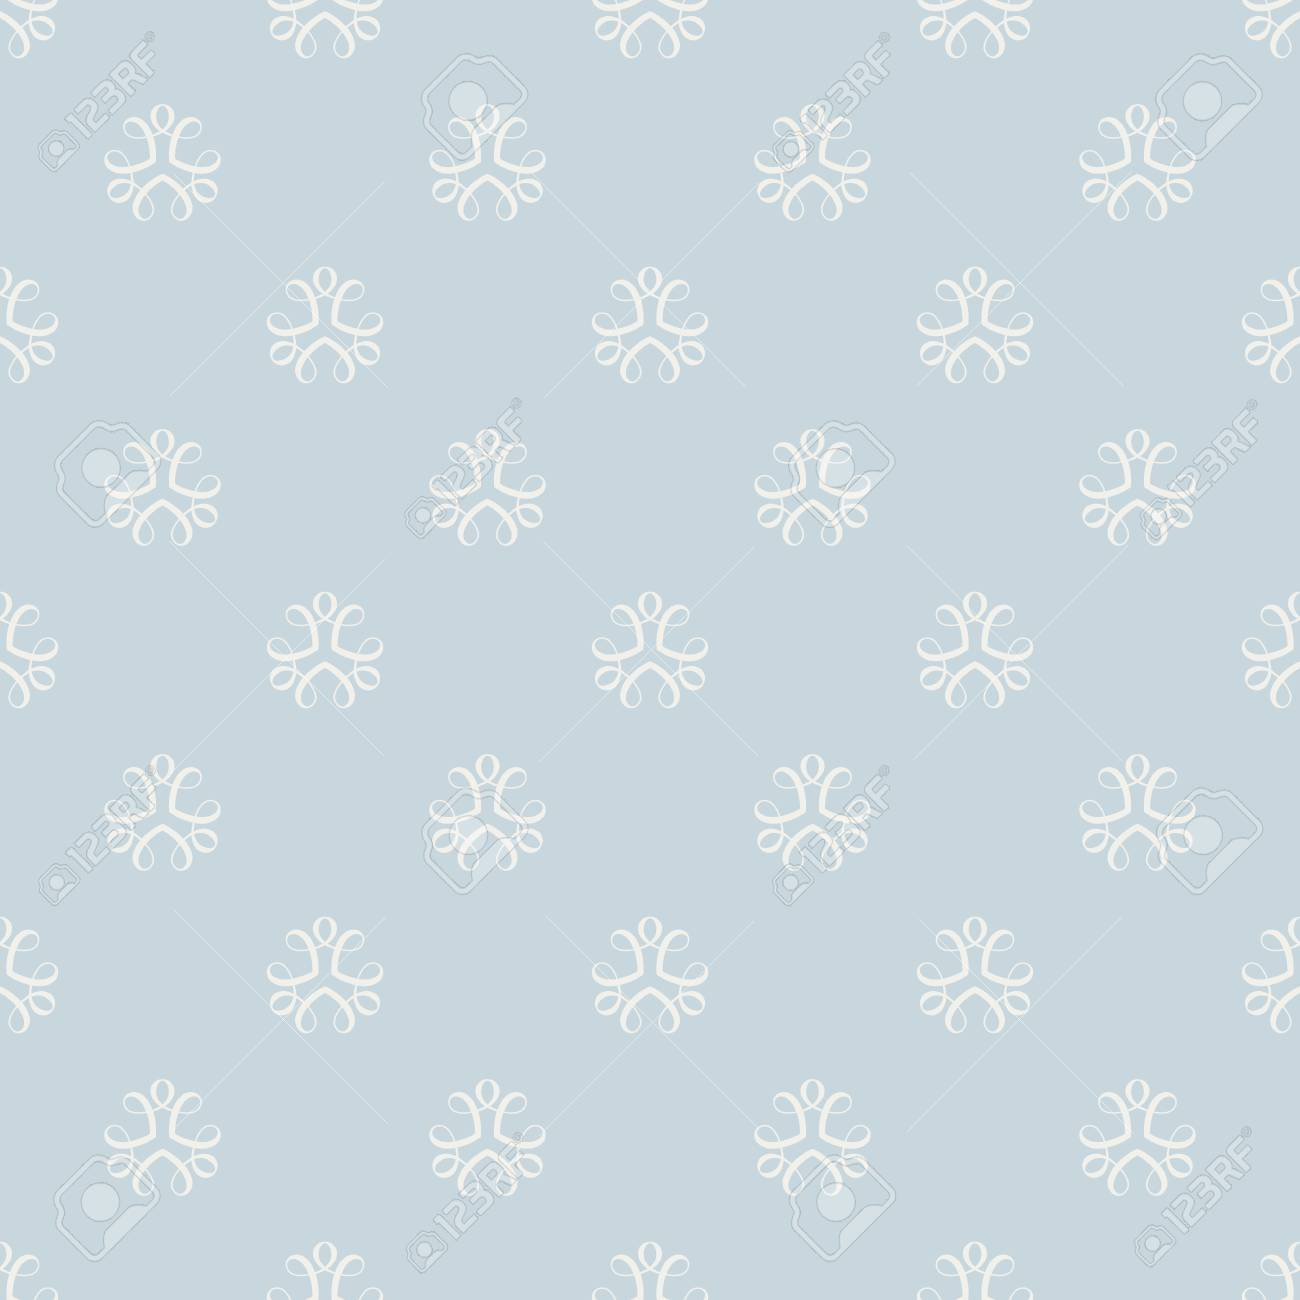 Seamless blue background for cards, invitations, textiles, wallpapers. - 61772142